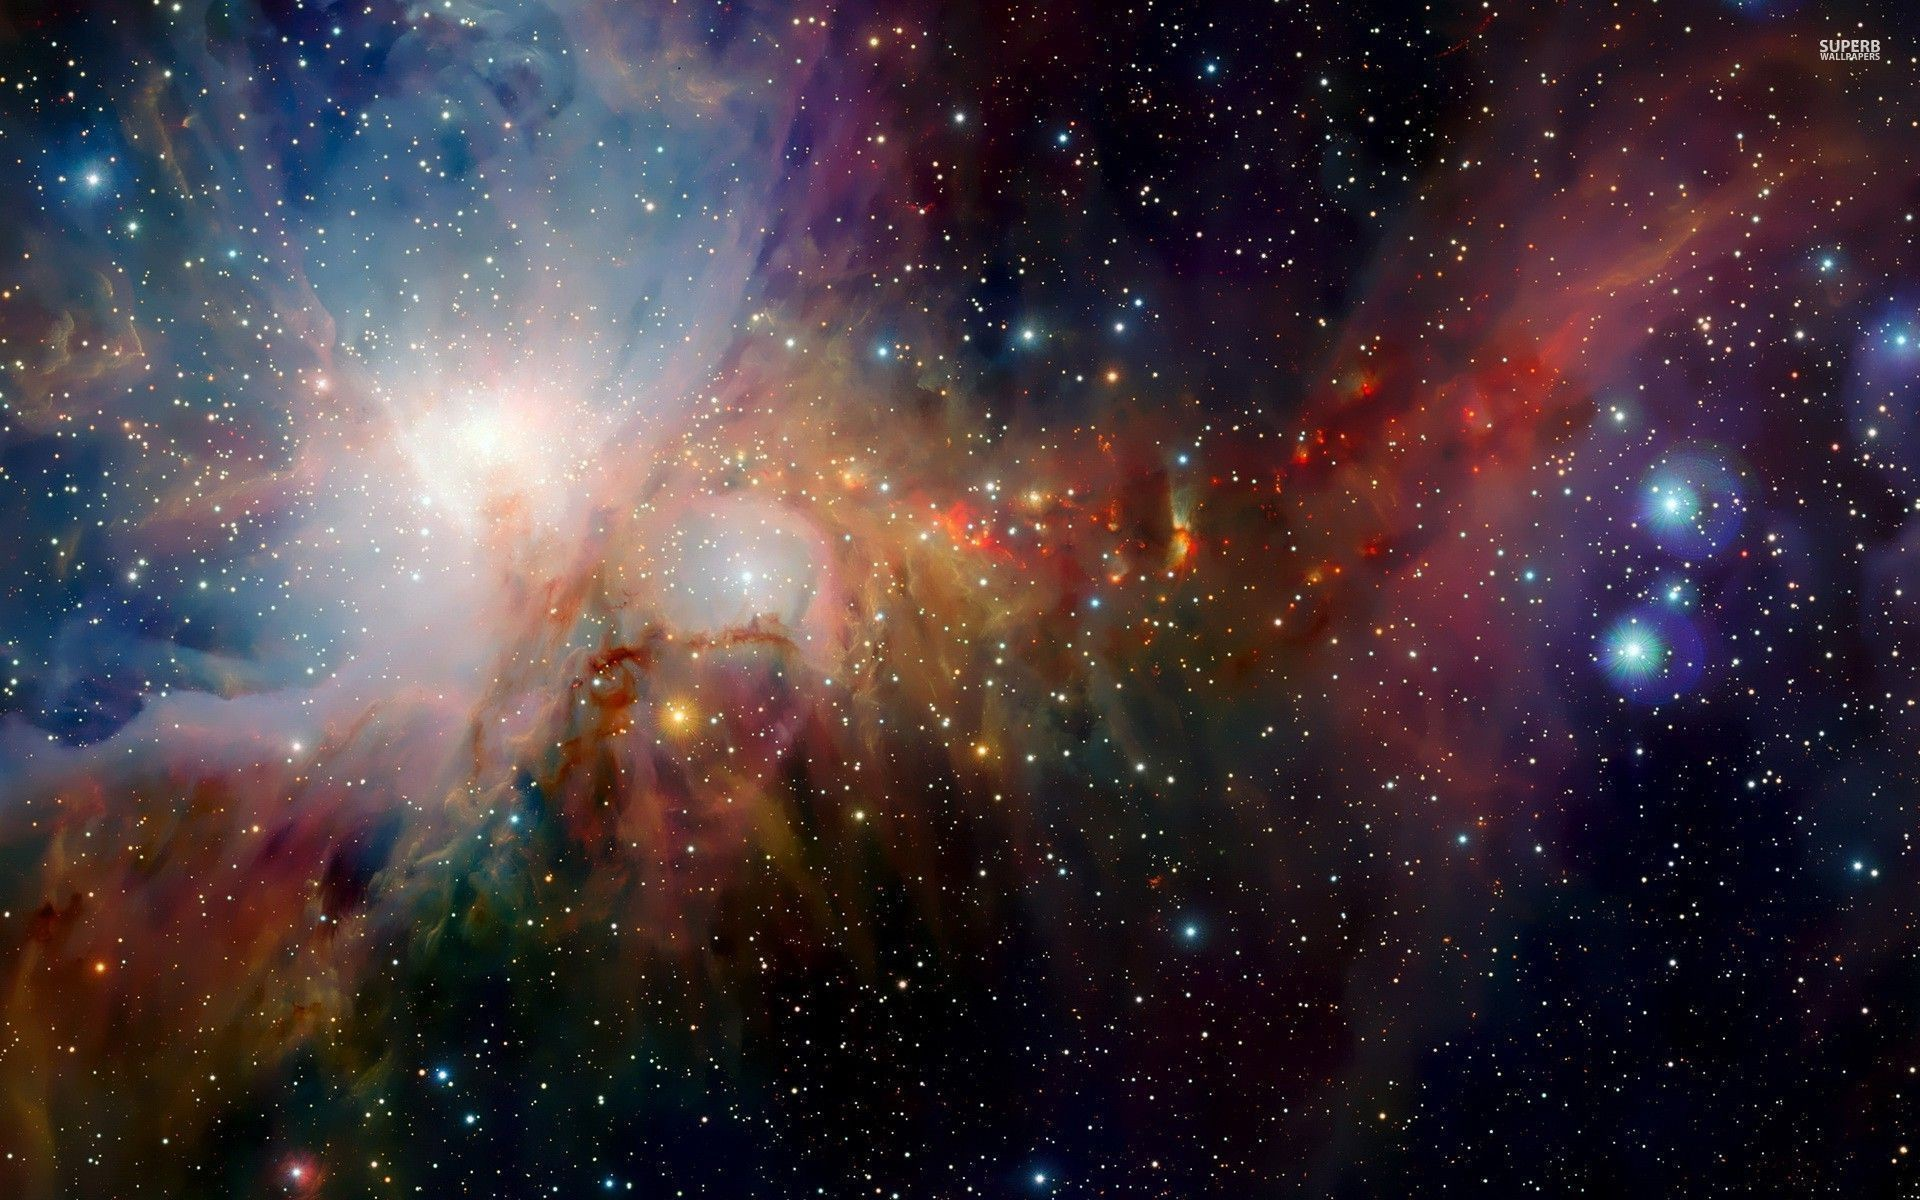 Colorful Space Wallpapers Widescreen As Wallpaper HD